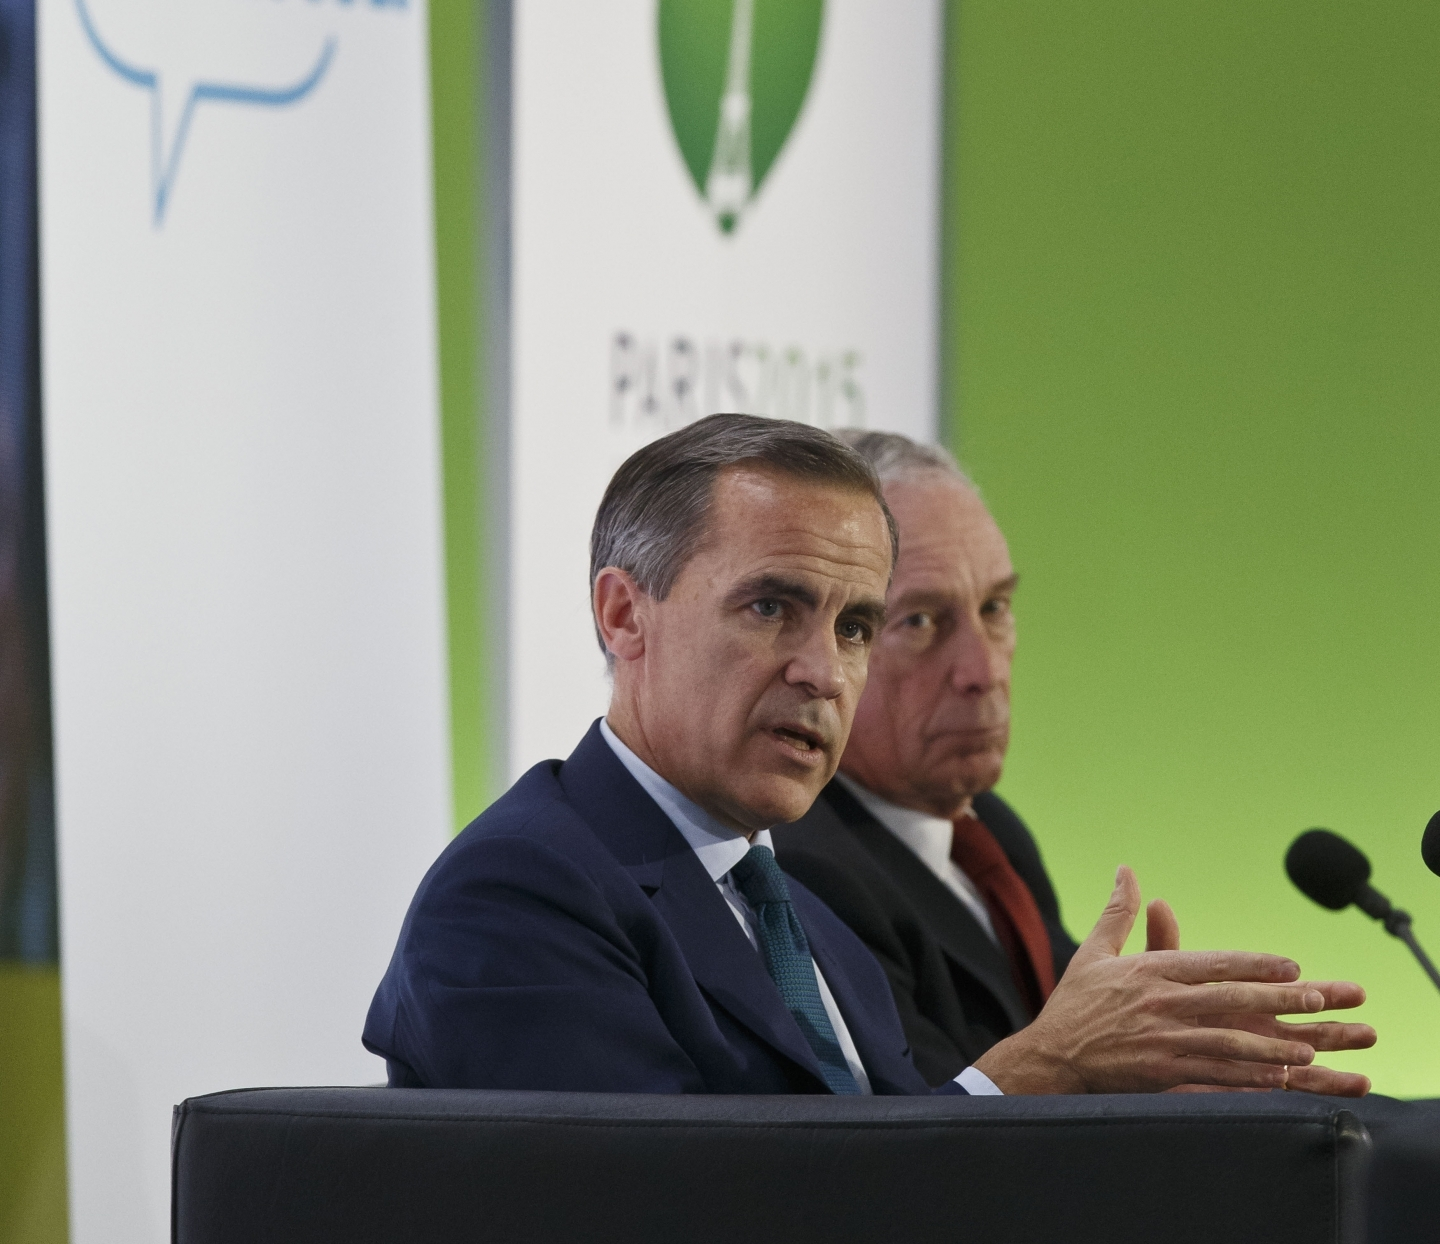 Mark Carney, Bank of England governor, with Michael Bloomberg, former mayor of New York